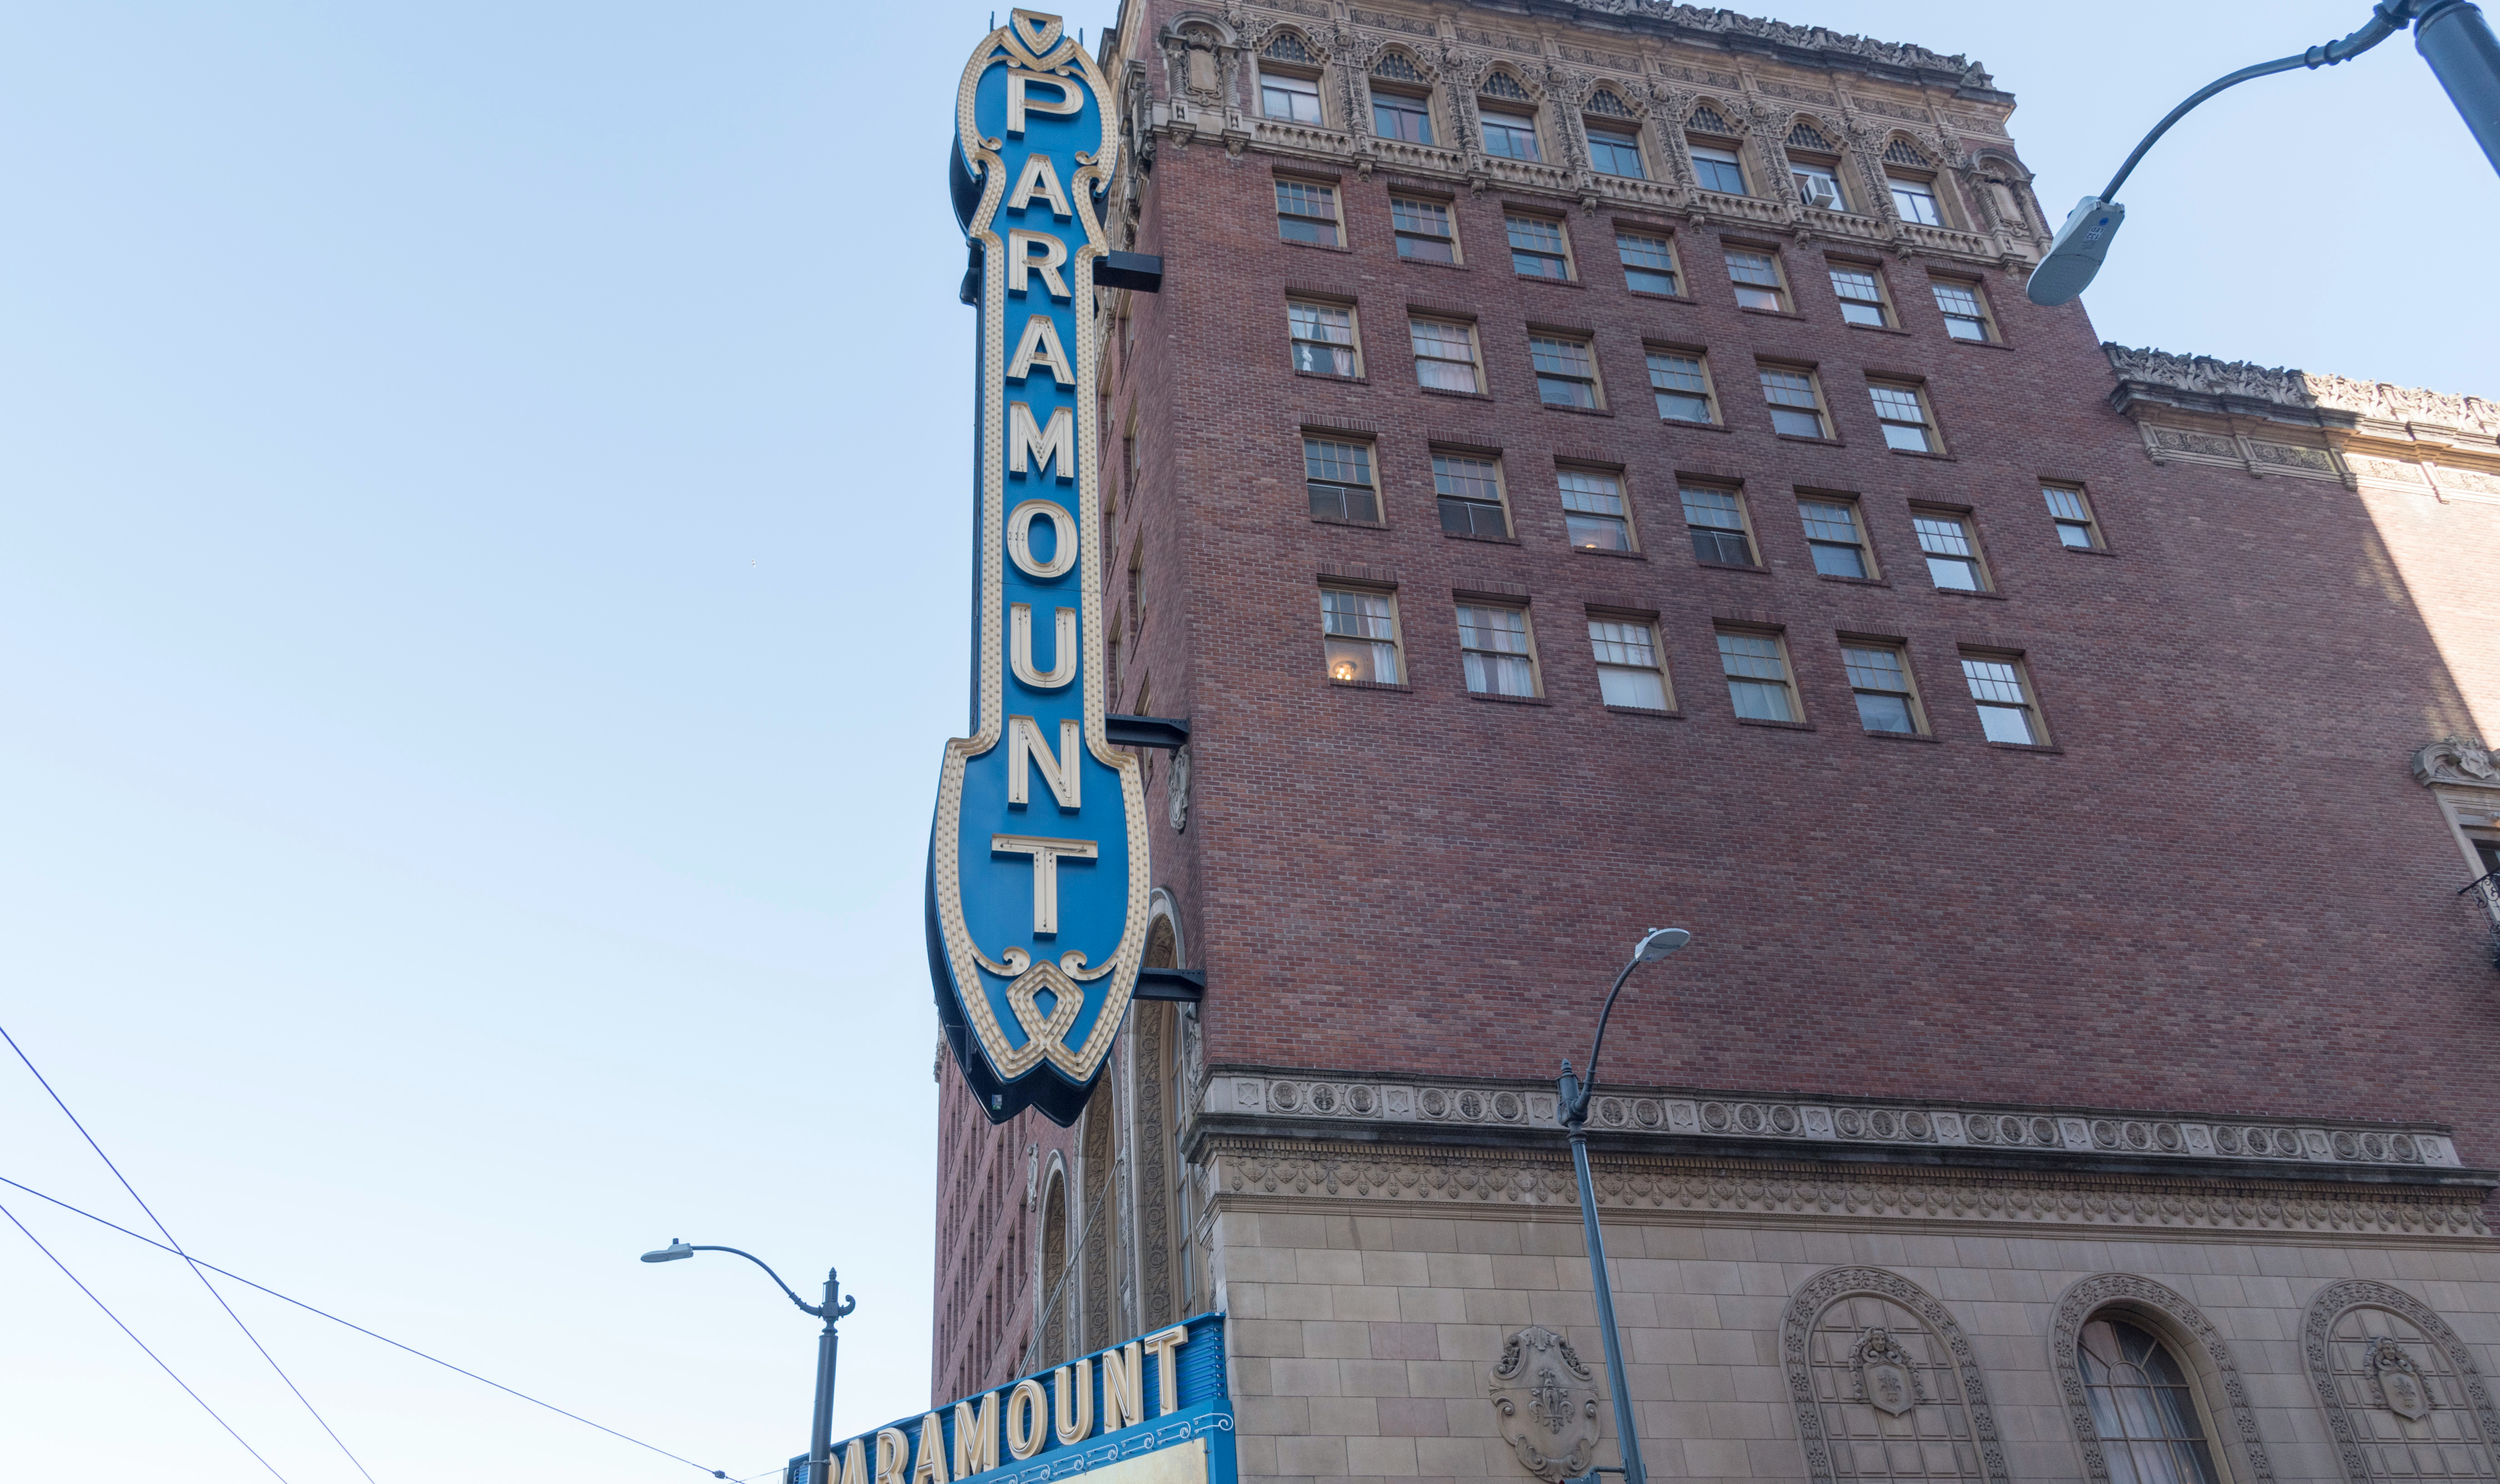 The exterior of the Paramount Theater in Seattle on a sunny day with the venue's name in a vertical sign on the brick facade.